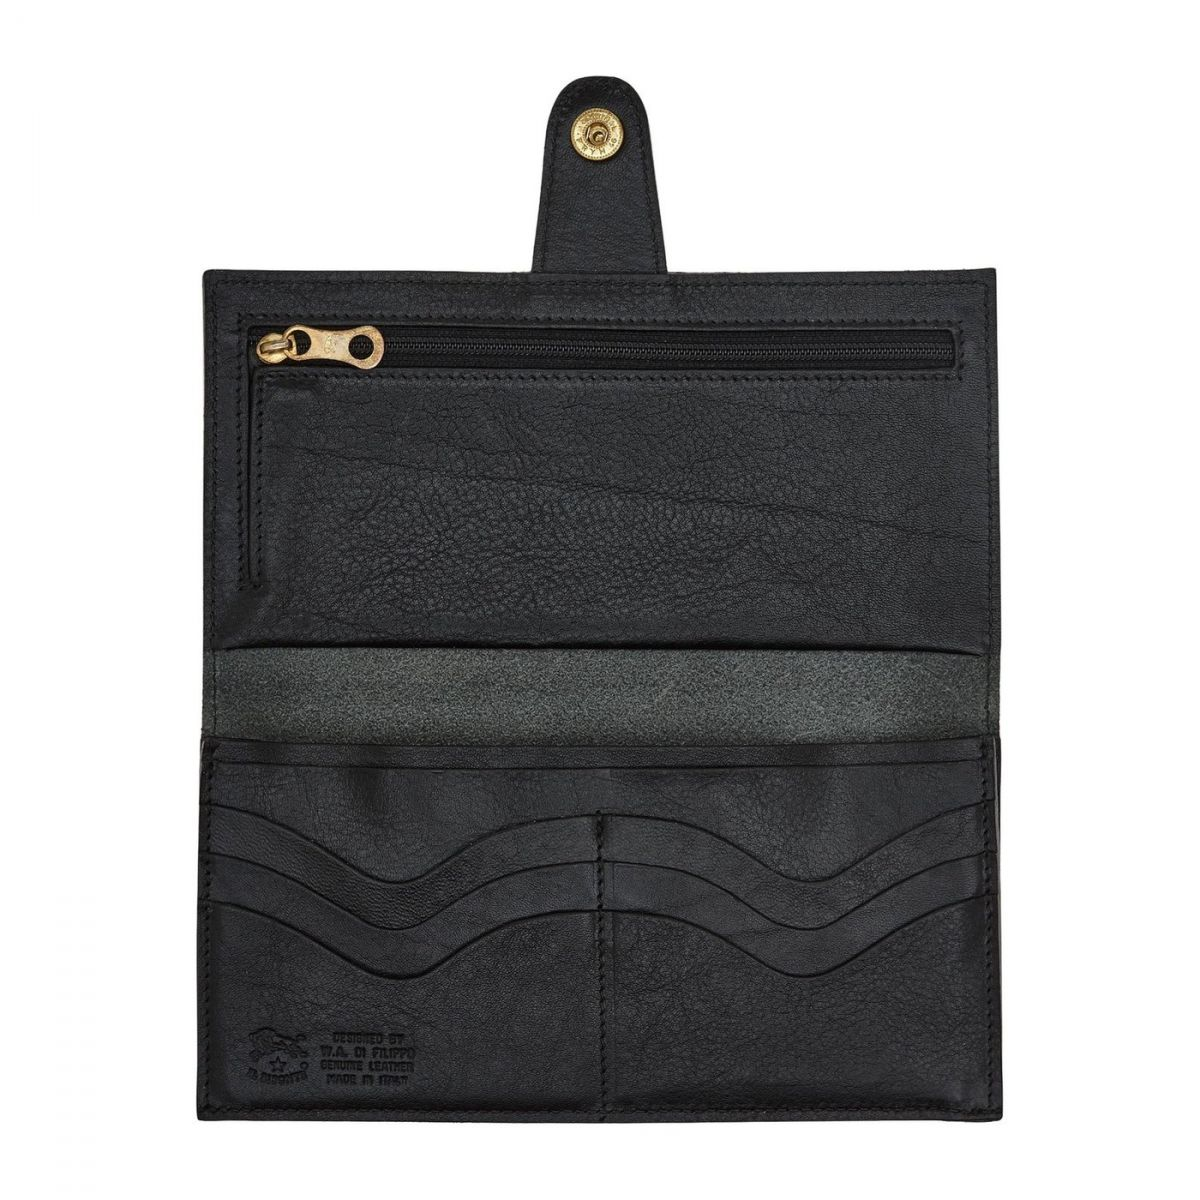 Women's Continental Wallet  in Cowhide Double Leather SCW057 color Black | Details